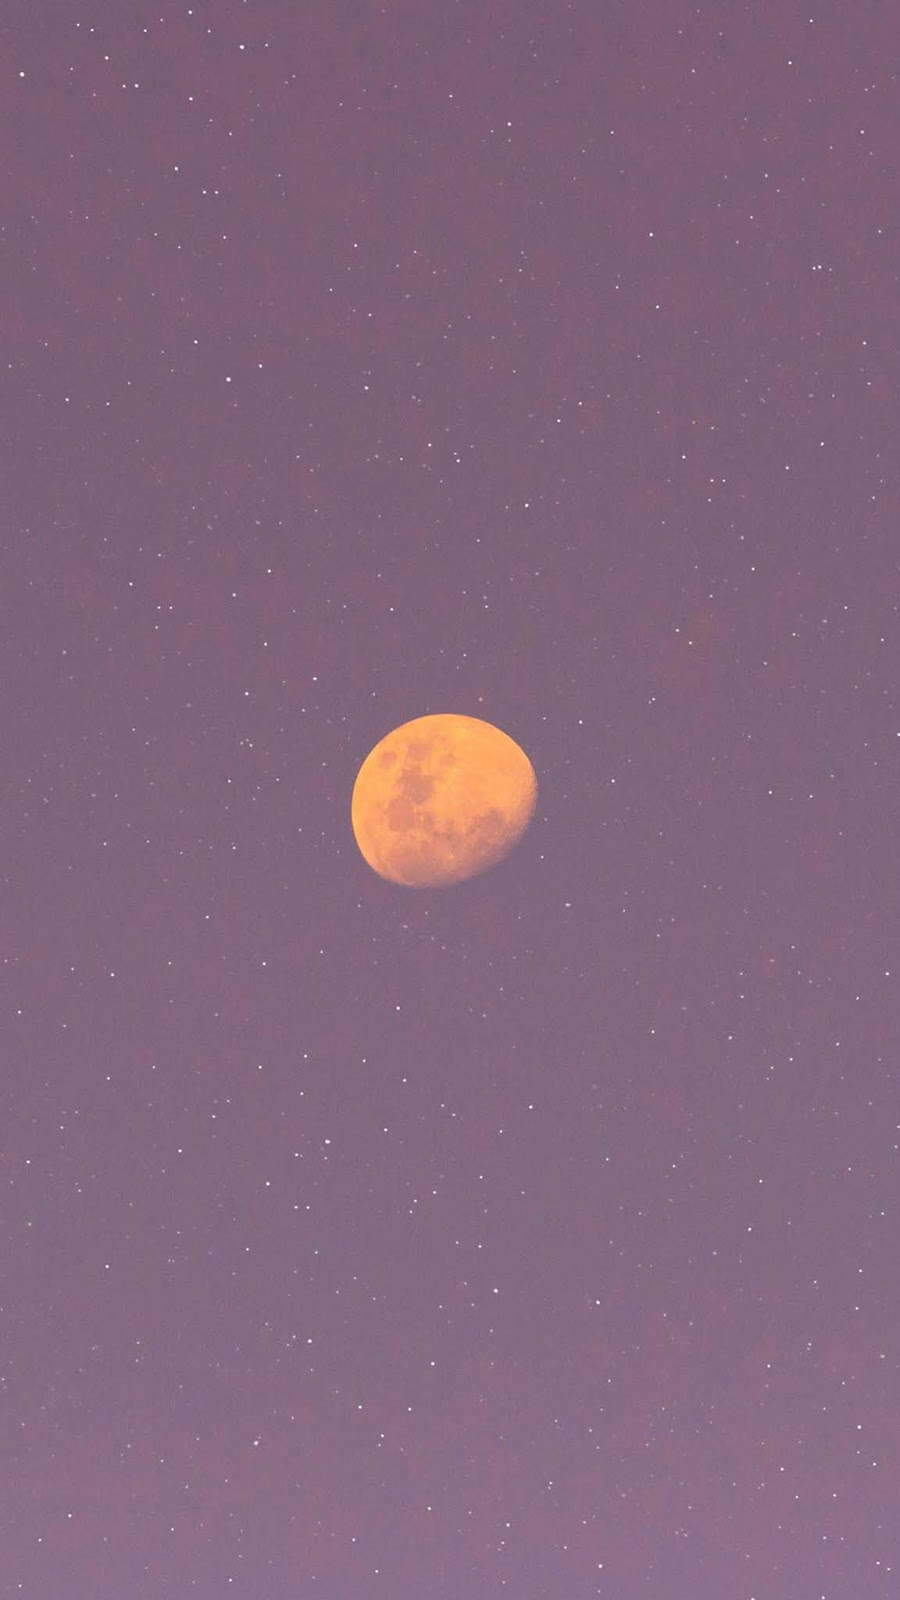 Full moon in the pink sky wallpaper